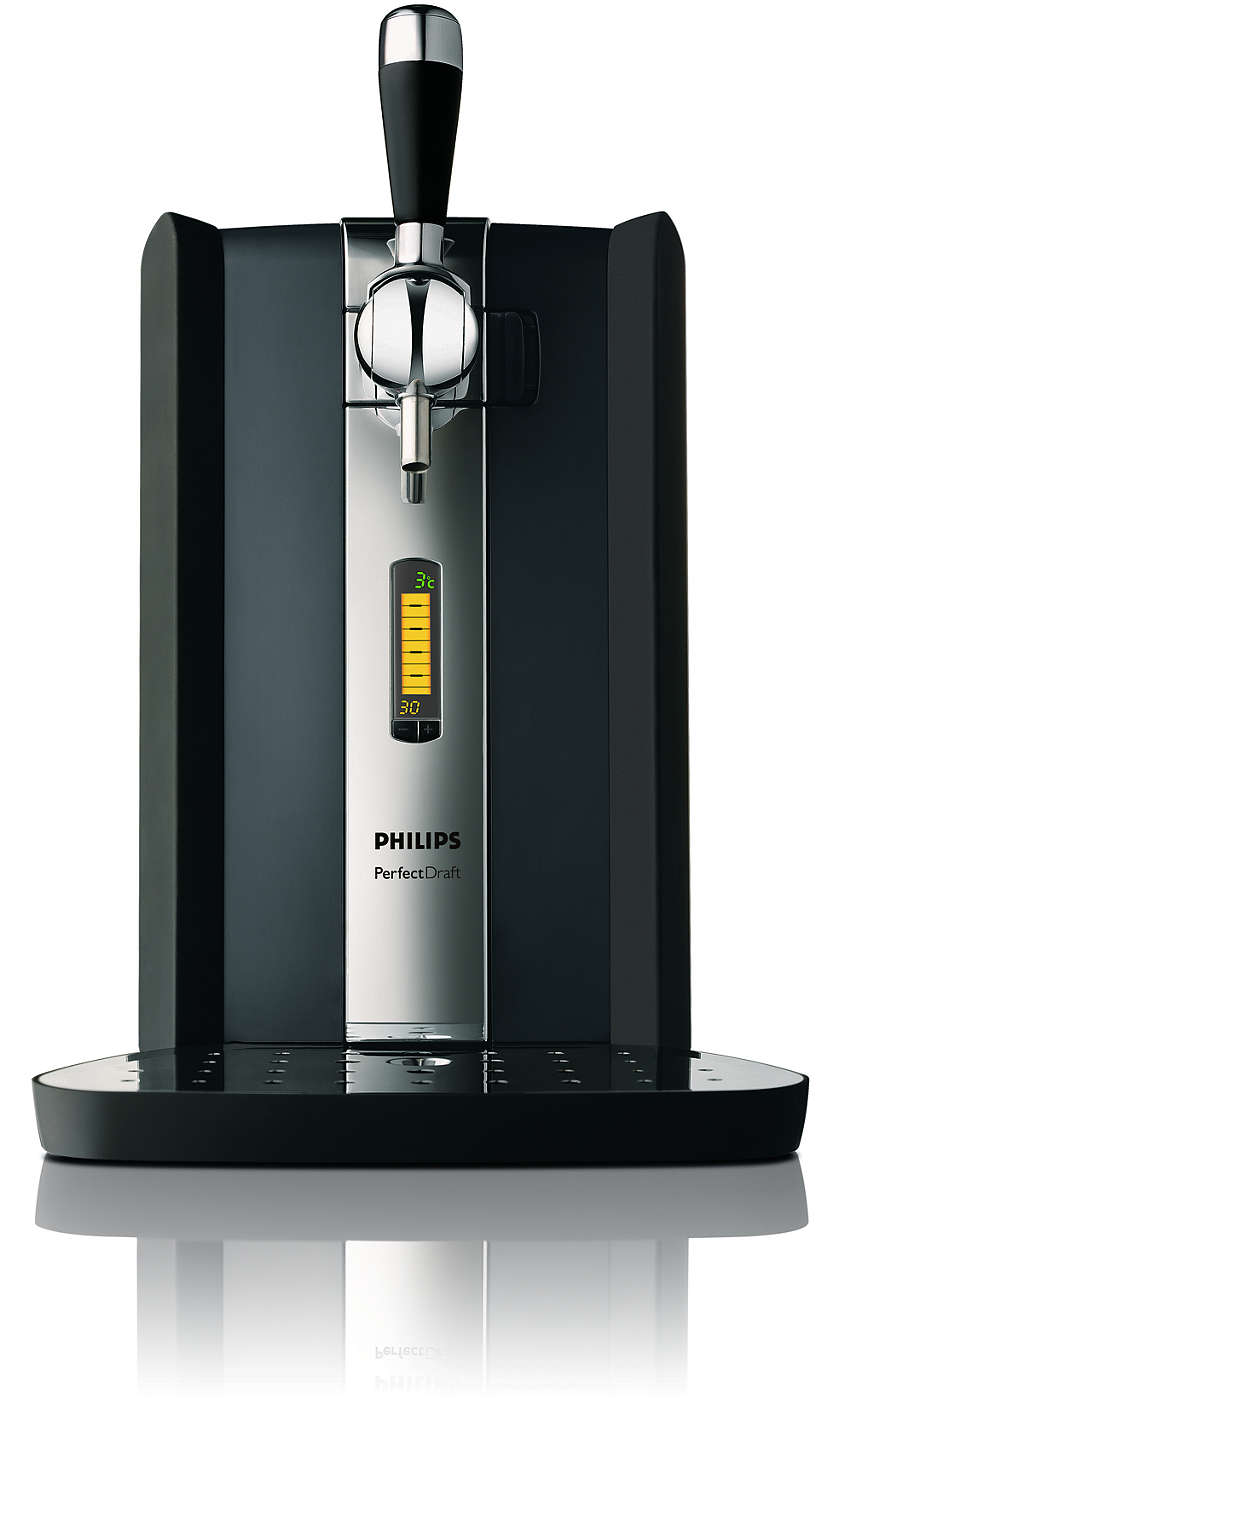 perfectdraft home draught system hd3620 25 philips. Black Bedroom Furniture Sets. Home Design Ideas